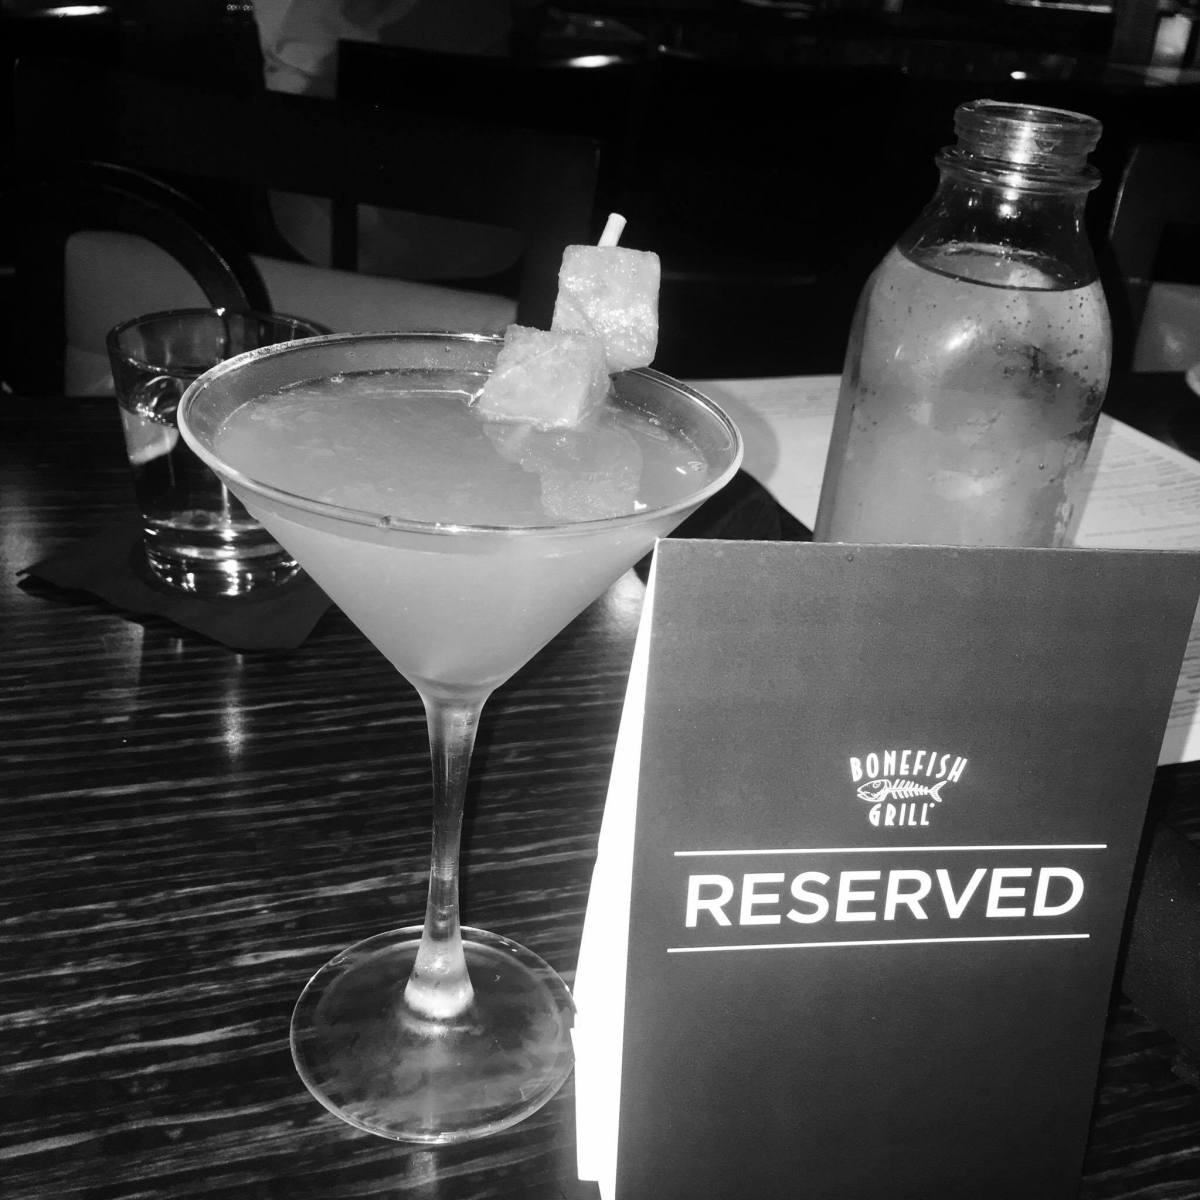 Out & About | Bloggers n' Bites at Bonefish Grill: Why Sunday Funday is a week prep must!